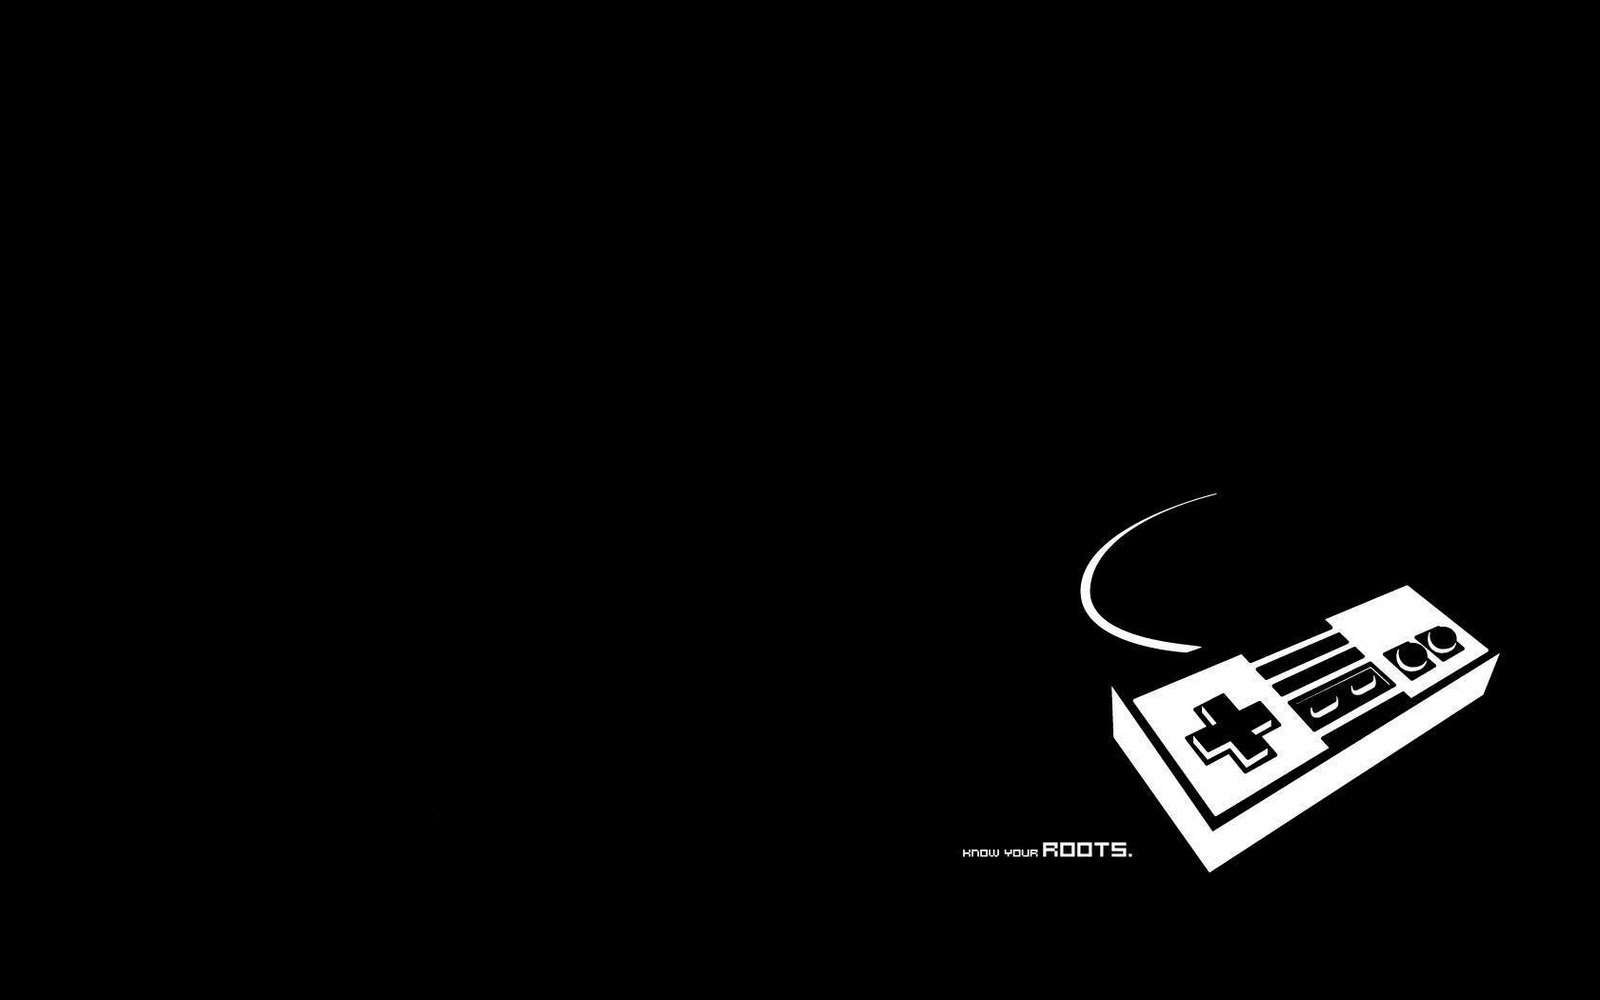 Download free HD Controller Retro Video Game Desktop Wallpaper, image